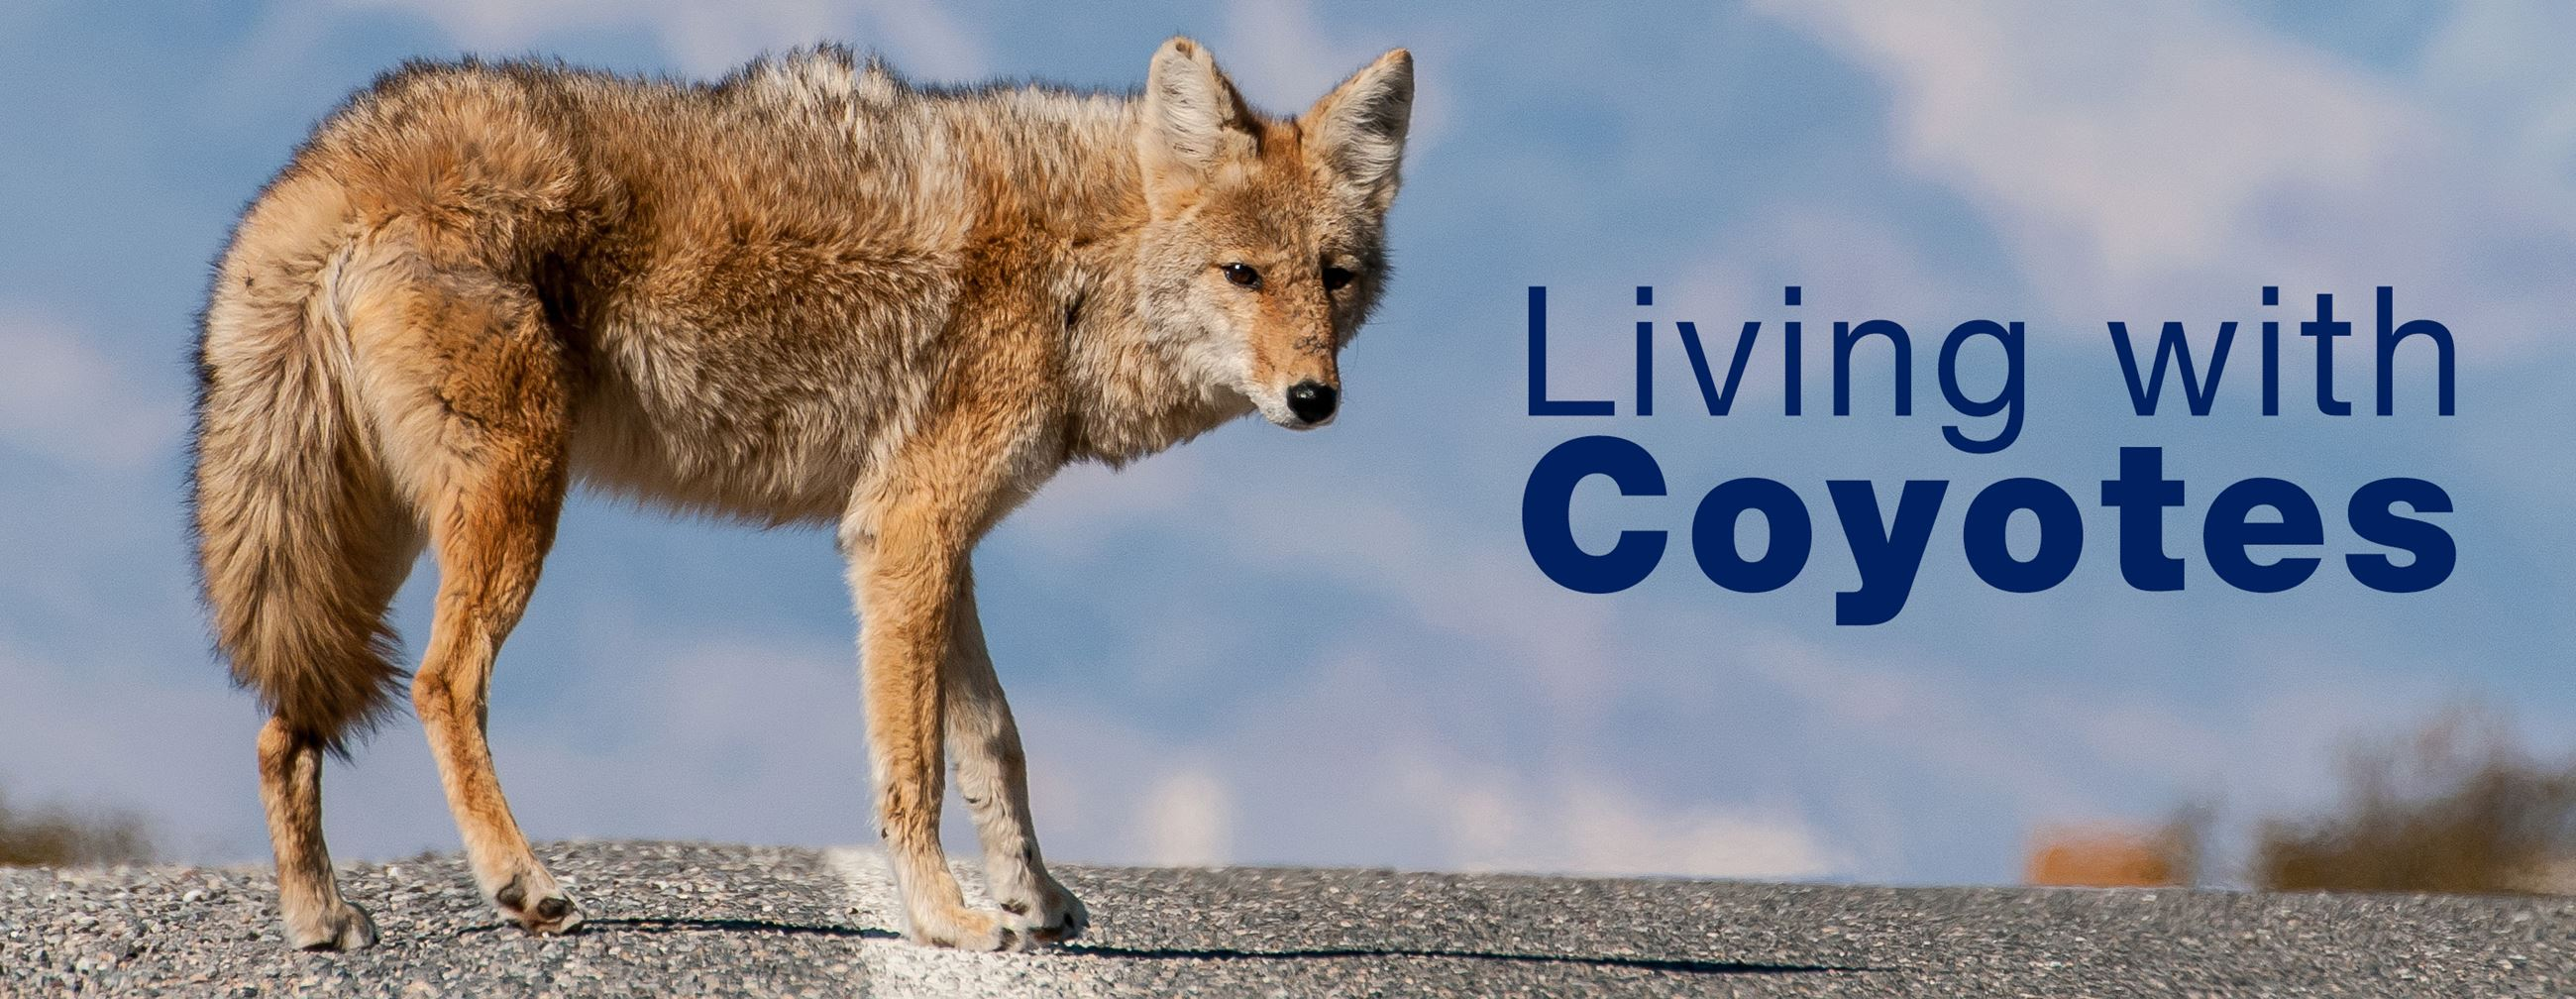 living with coyotes 3